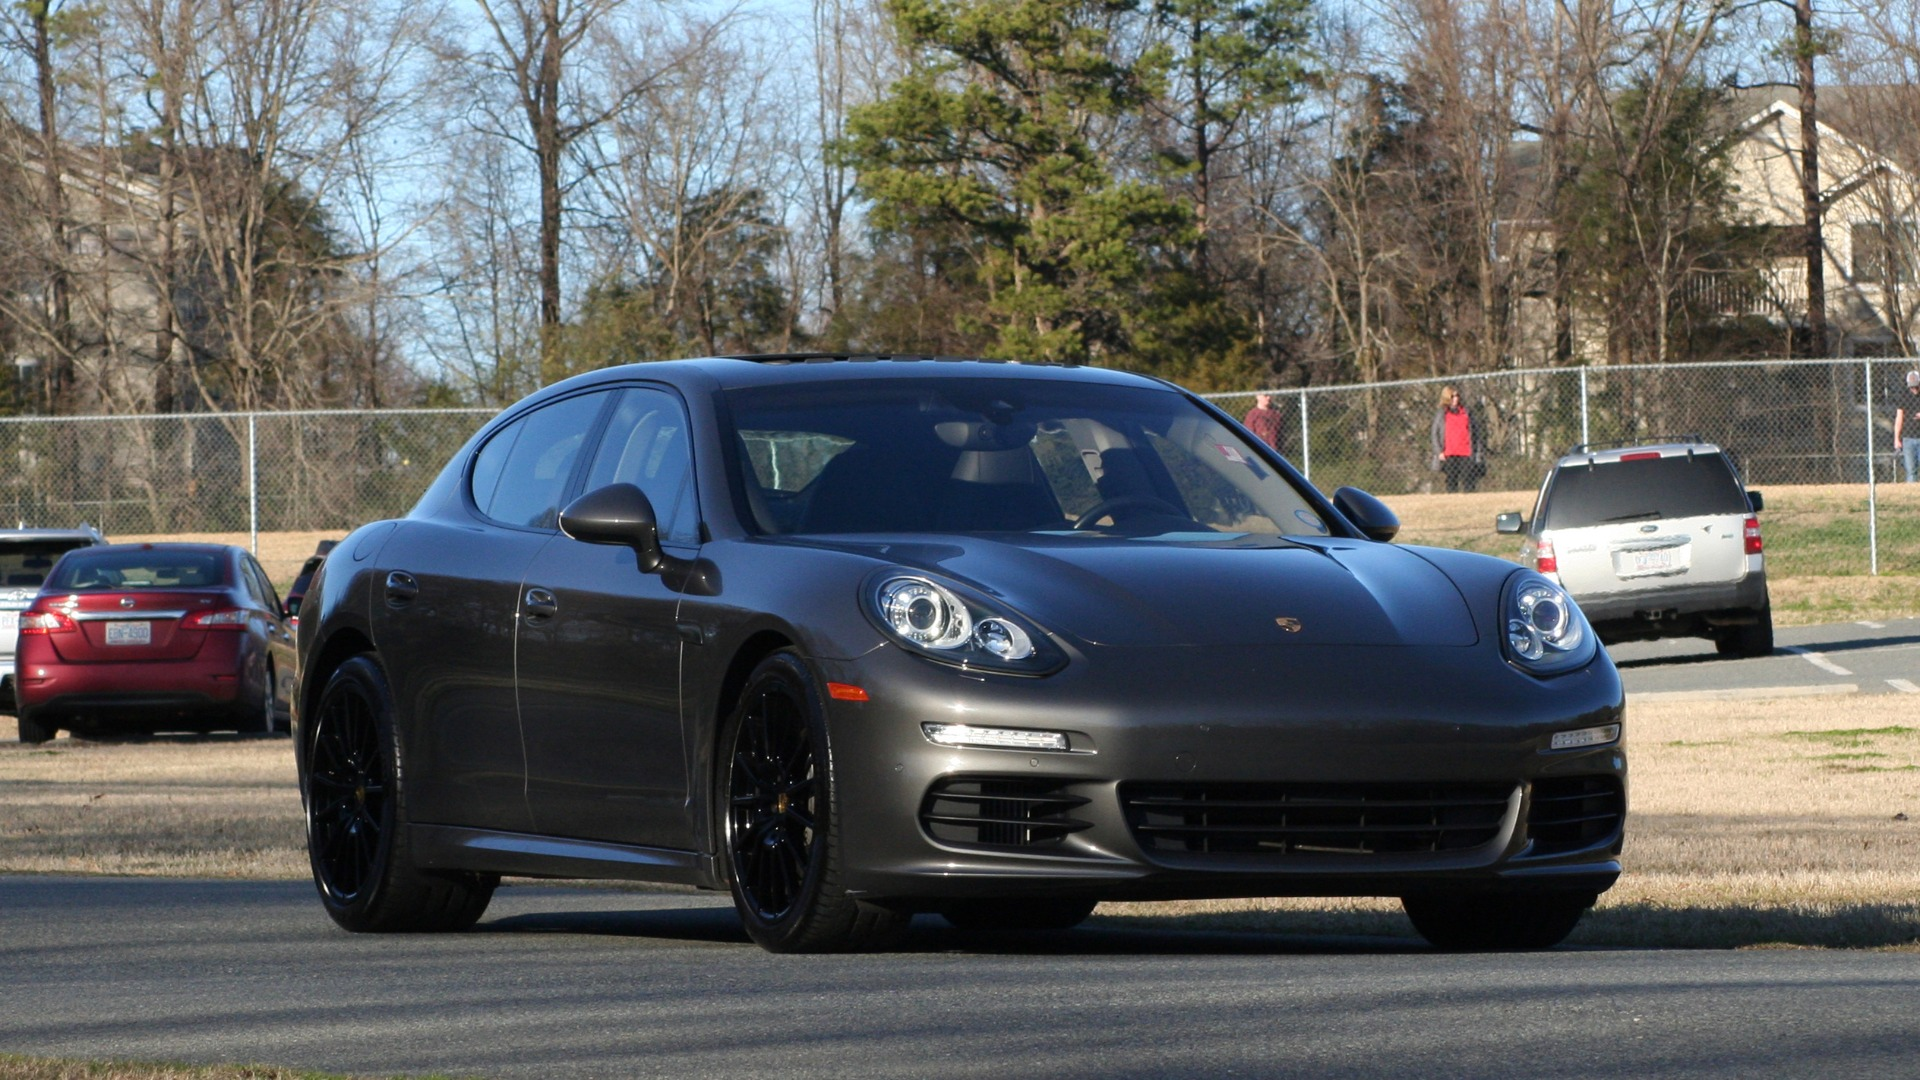 Used 2016 Porsche PANAMERA S / TURBO V6 / PDK / NAV / BOSE / SNRF / LDW / REARVIEW for sale Sold at Formula Imports in Charlotte NC 28227 18